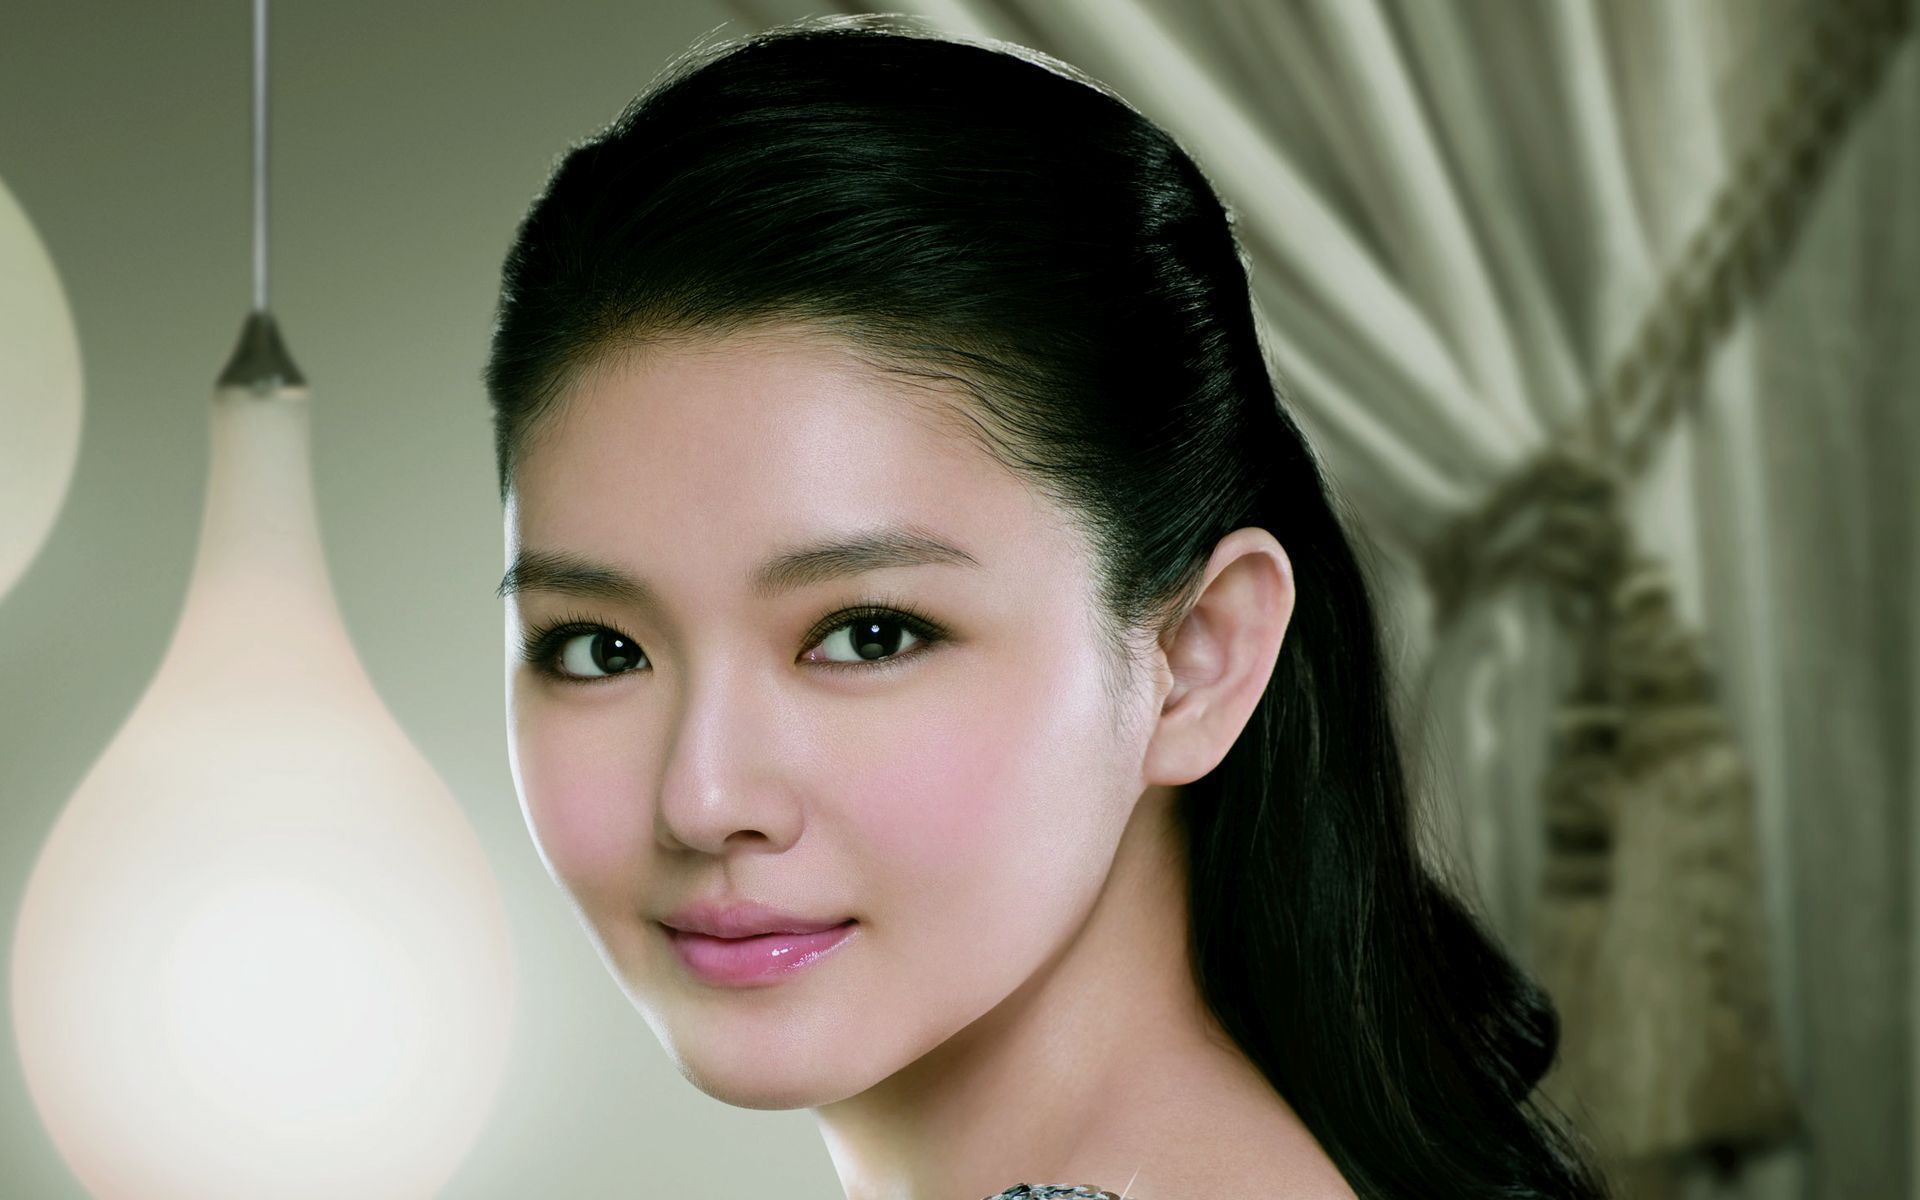 Fall Out Boy Wallpaper 2015 Barbie Hsu Wallpapers Backgrounds